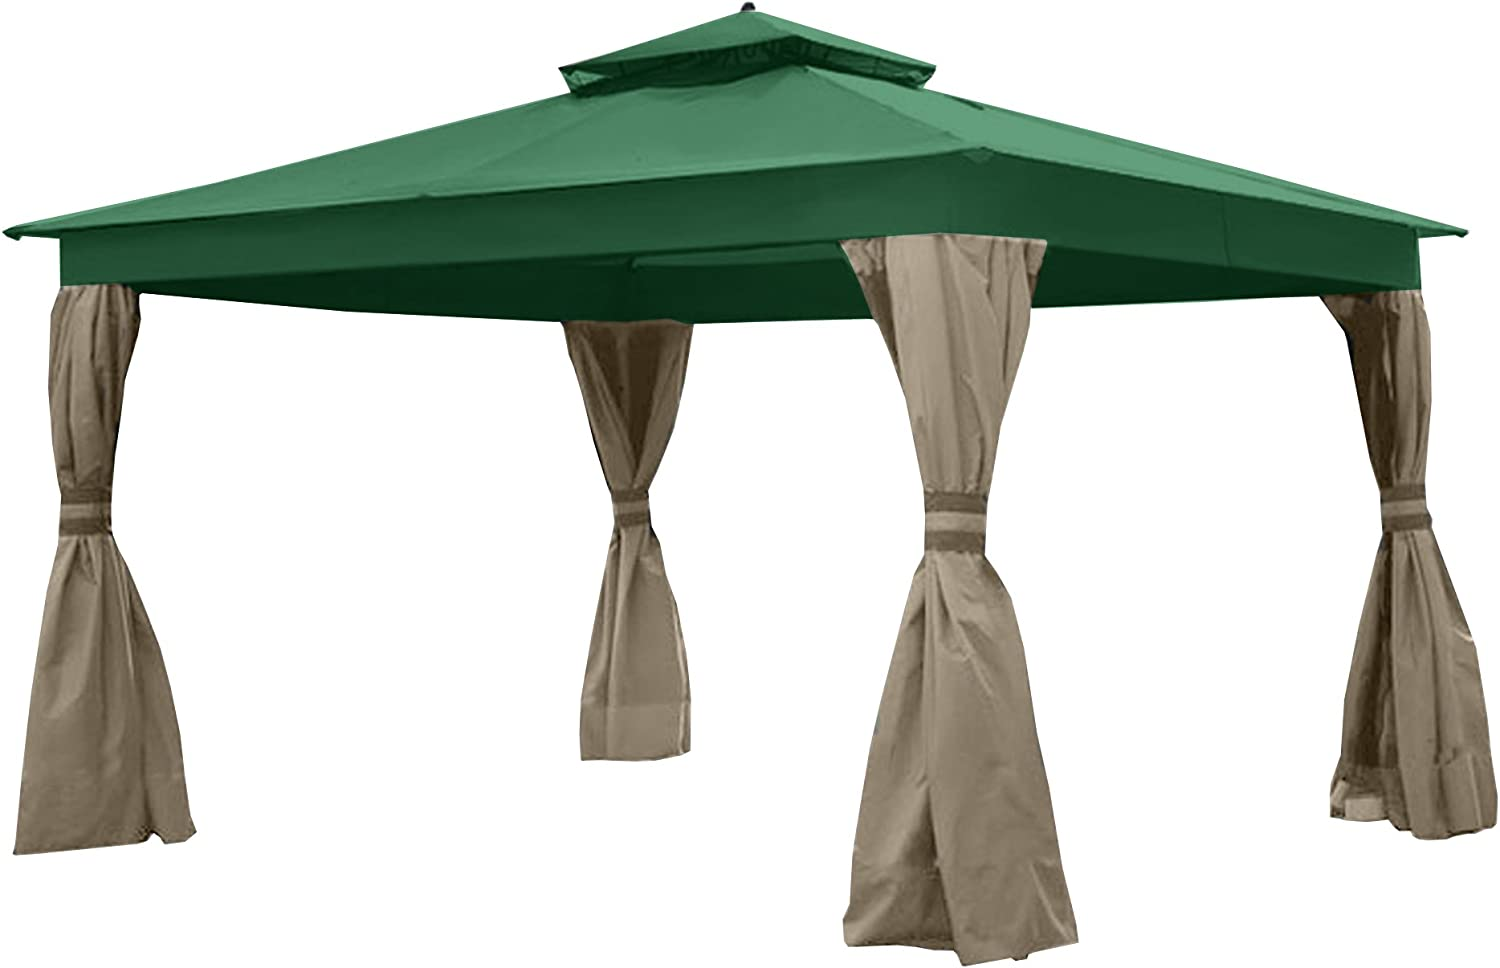 Will NOT FIT Model GF-12S004B-1 Riplock 350 Garden Winds Replacement Canopy for Lowes Dome 10 x 12 Gazebo Replacement Canopy Green